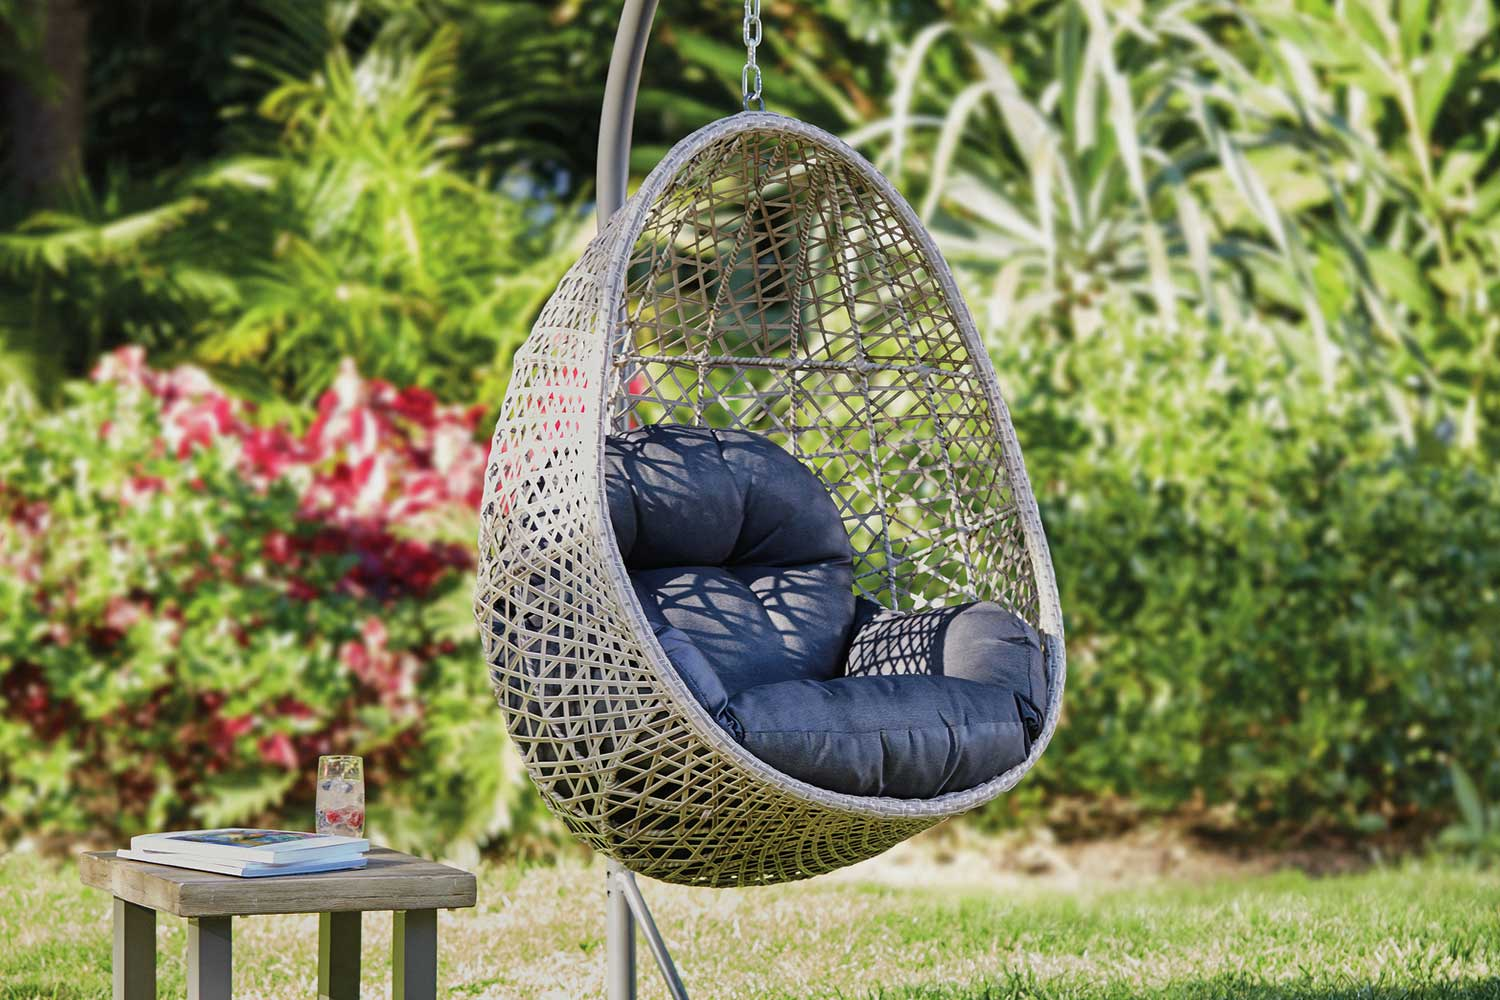 Stupendous Aldis Cheap Outdoor Furniture And Entertaining Sale This Gmtry Best Dining Table And Chair Ideas Images Gmtryco